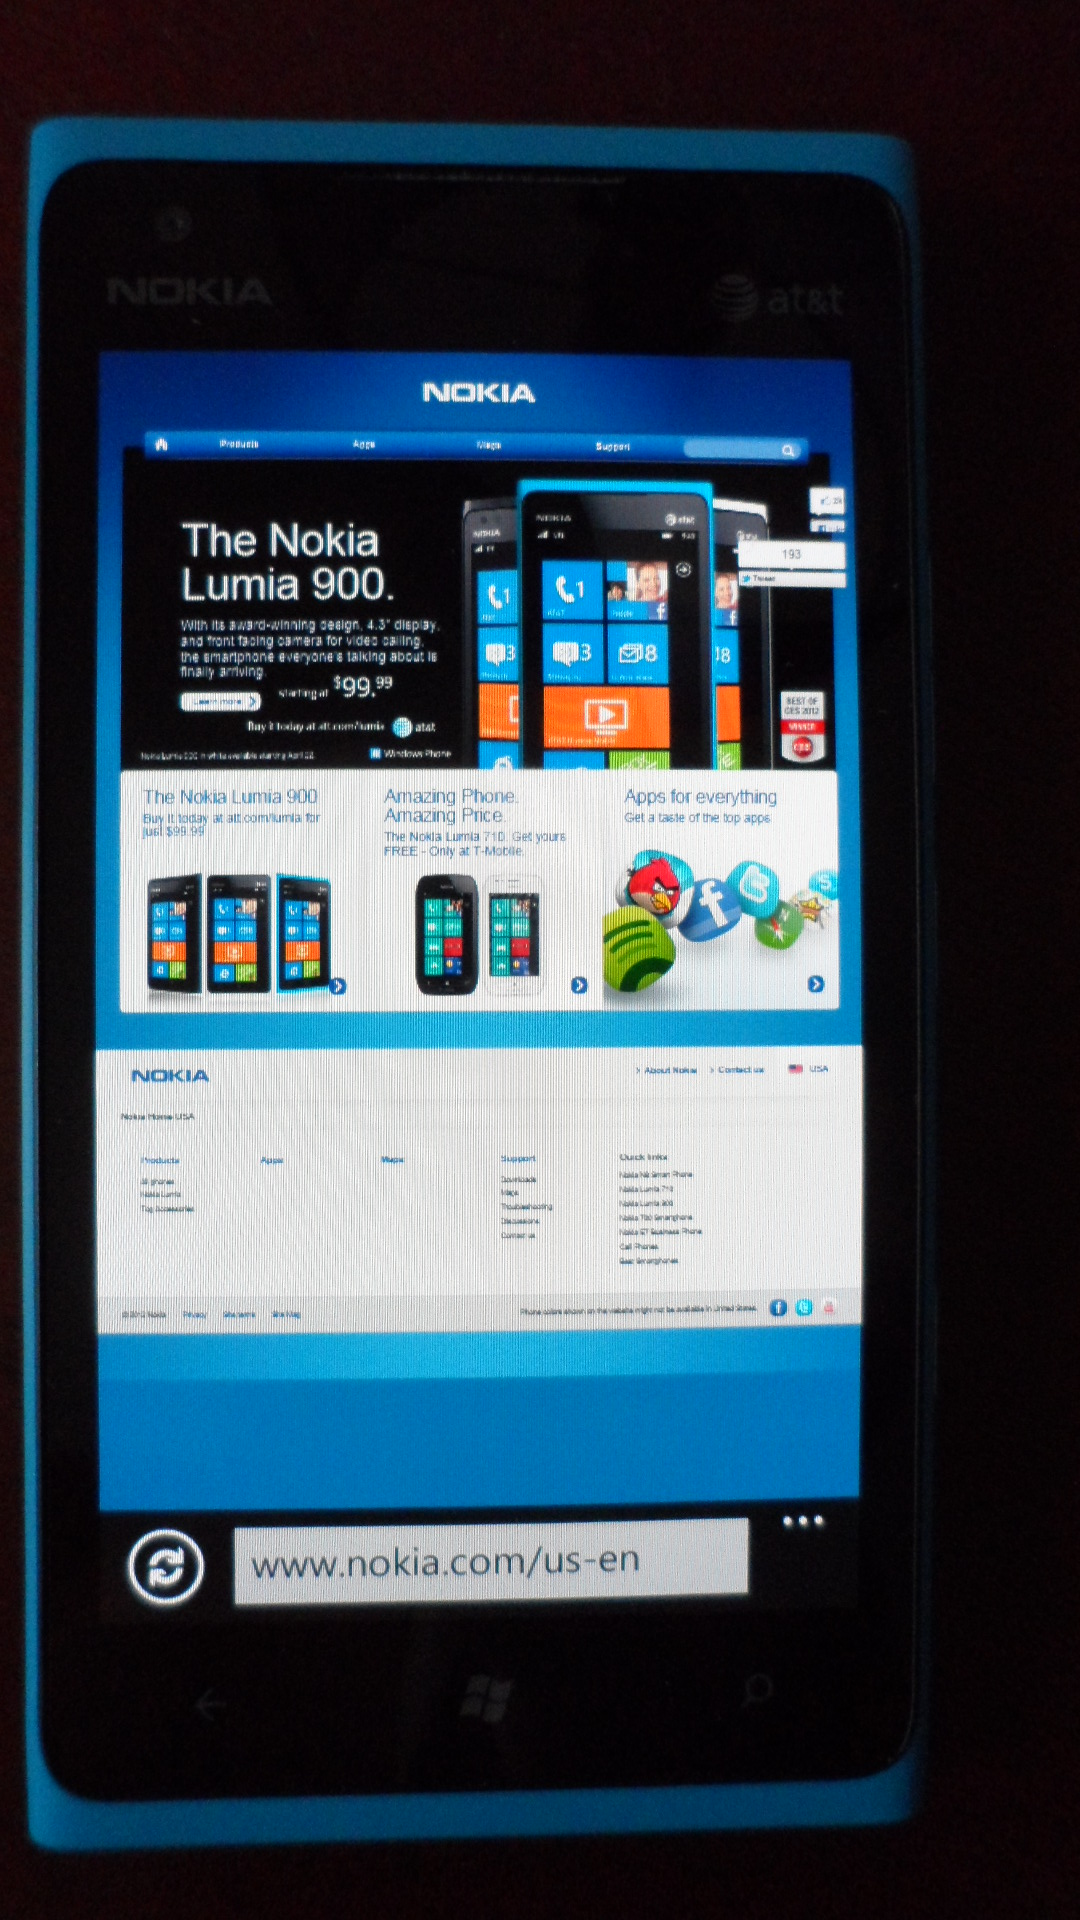 Nokia Lumia 900 – Internet Explorer browser